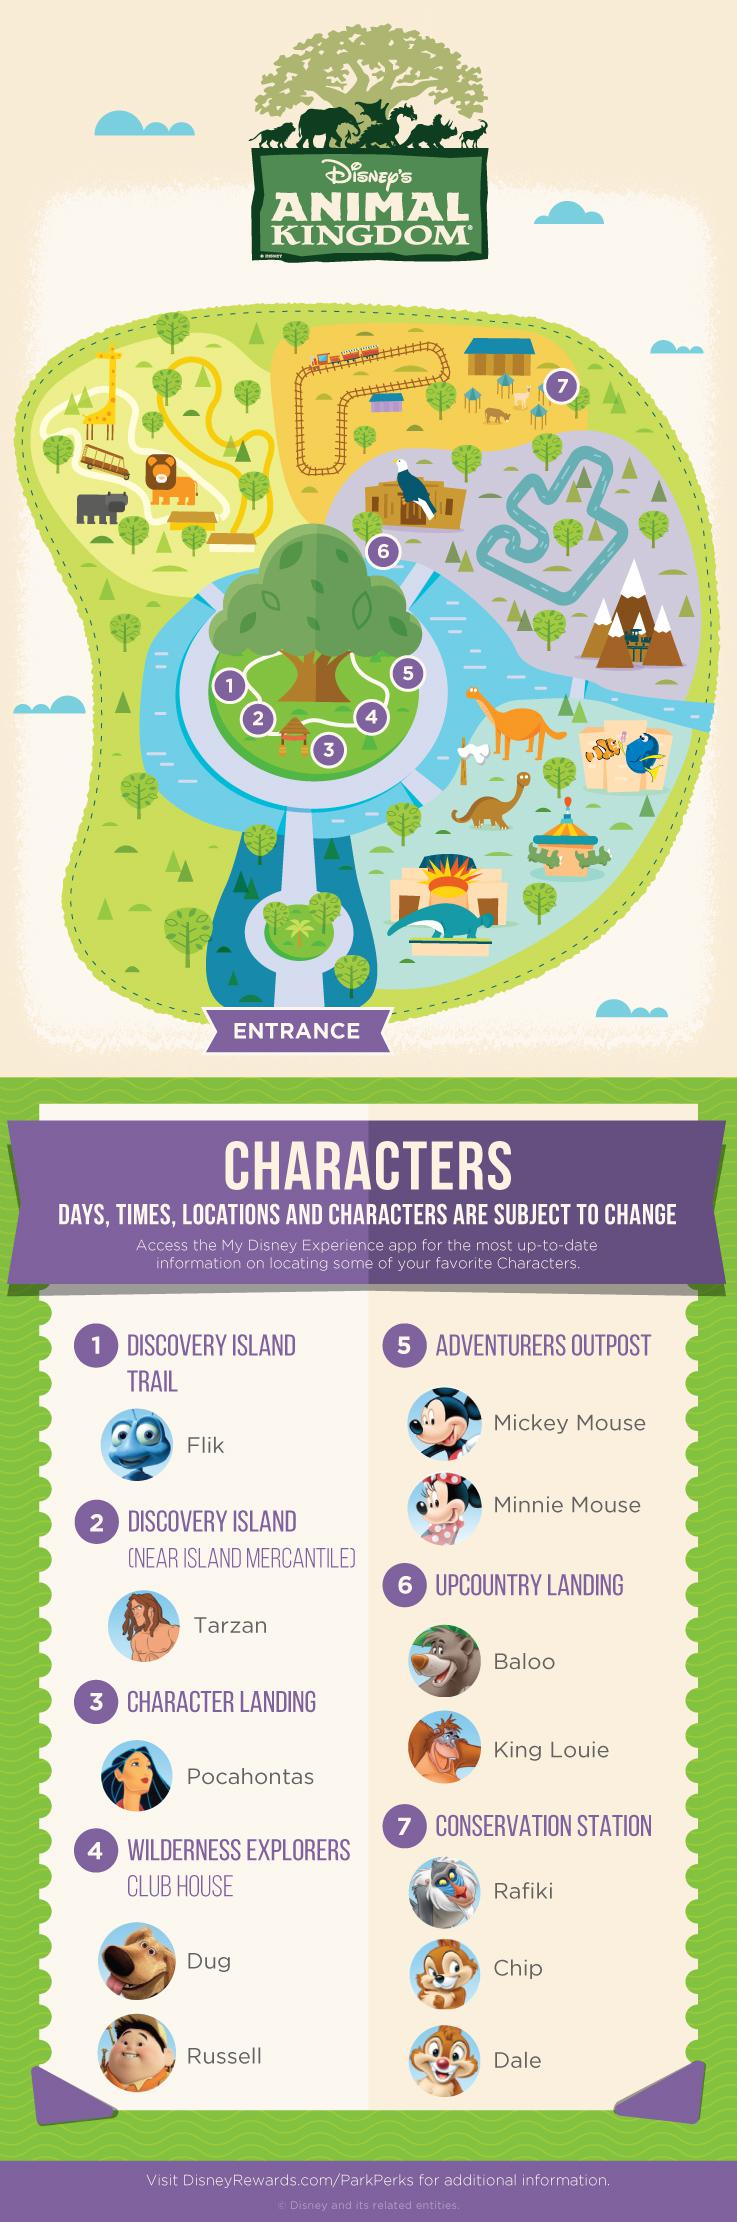 Disney Animal Kingdom Character Experience Map